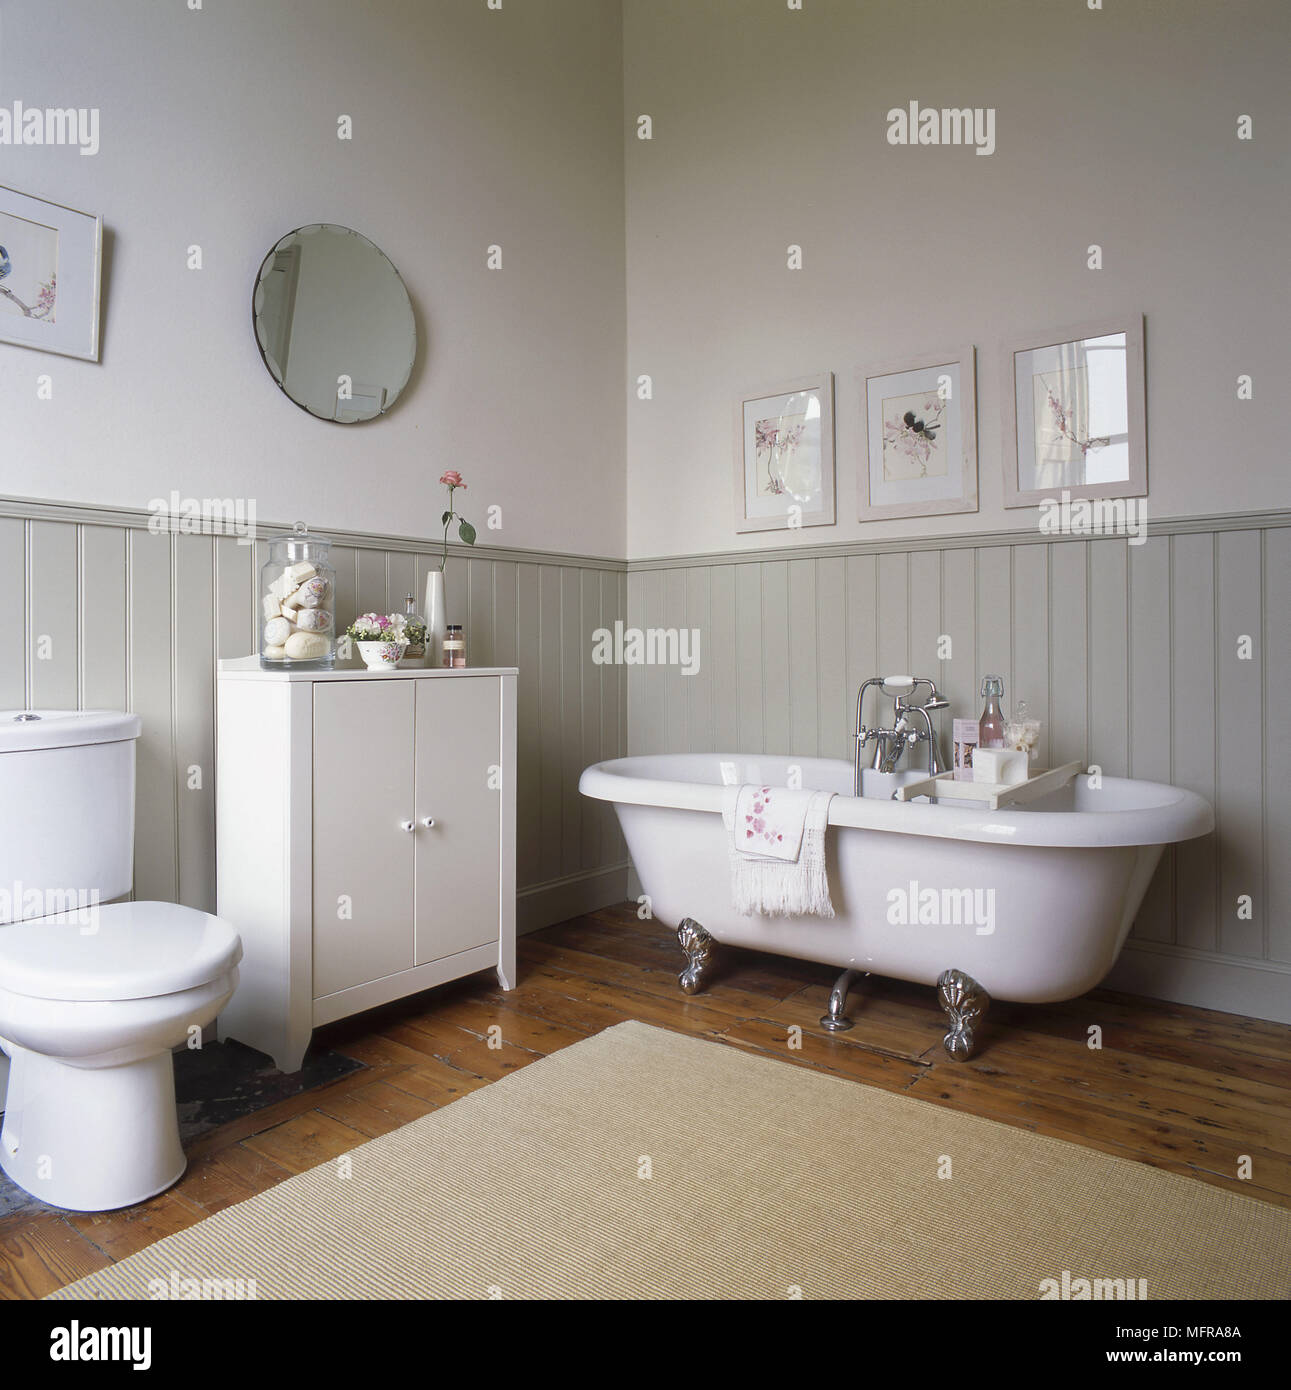 Country Style Bathroom High Resolution Stock Photography And Images Alamy